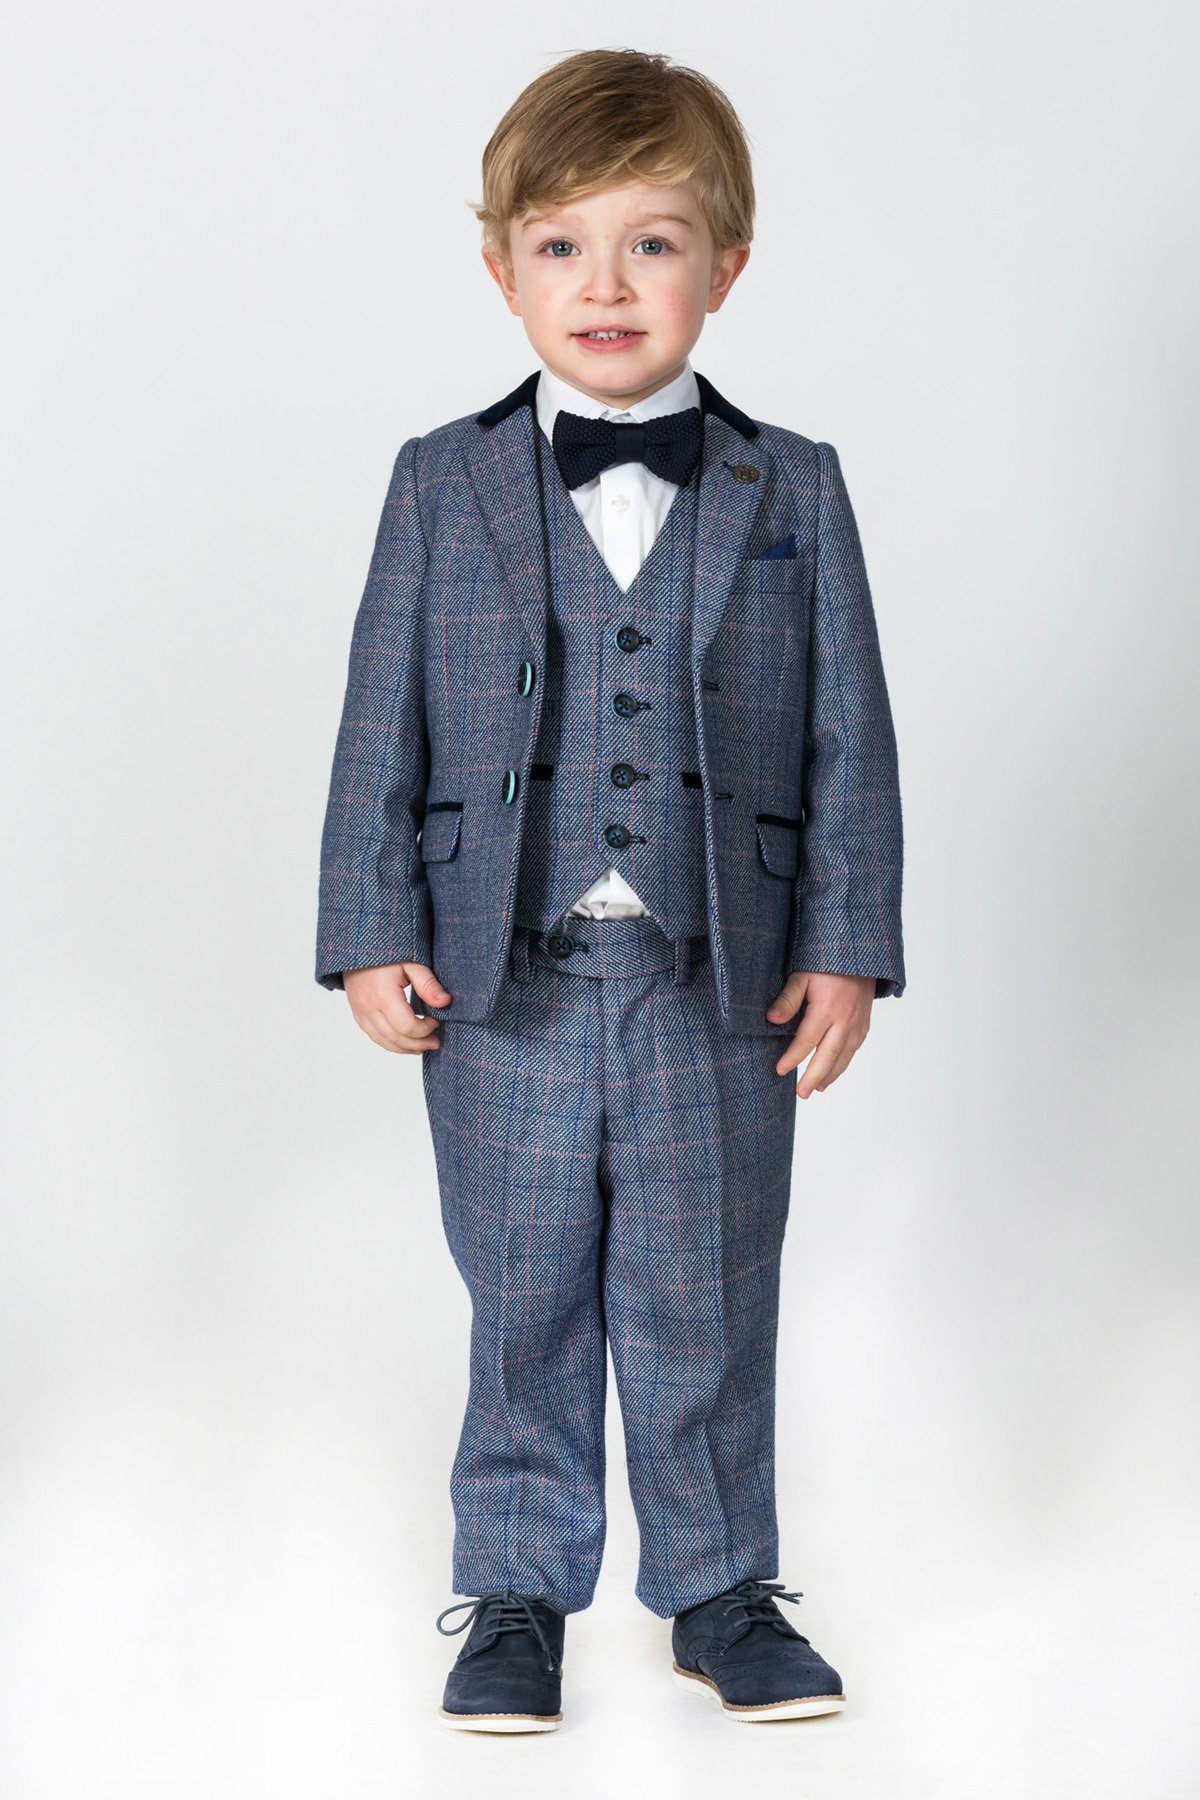 f17a21552427 Hilton Children's Blue Check Print Tweed Three Piece Suit With Single  Breasted Waistcoat